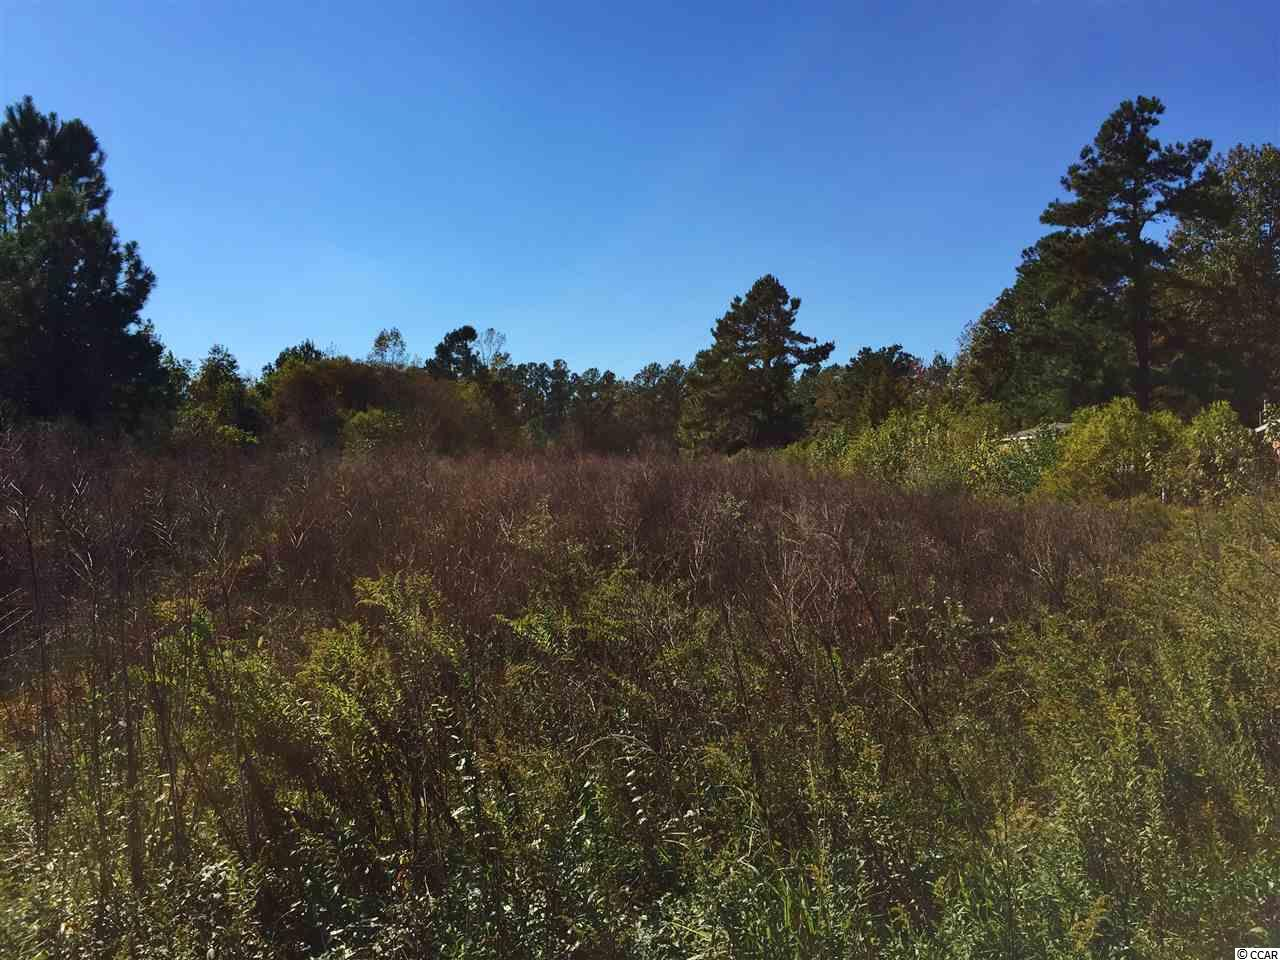 Acreage for Sale at Tract 2 W Hwy 31 Loris, South Carolina 29569 United States